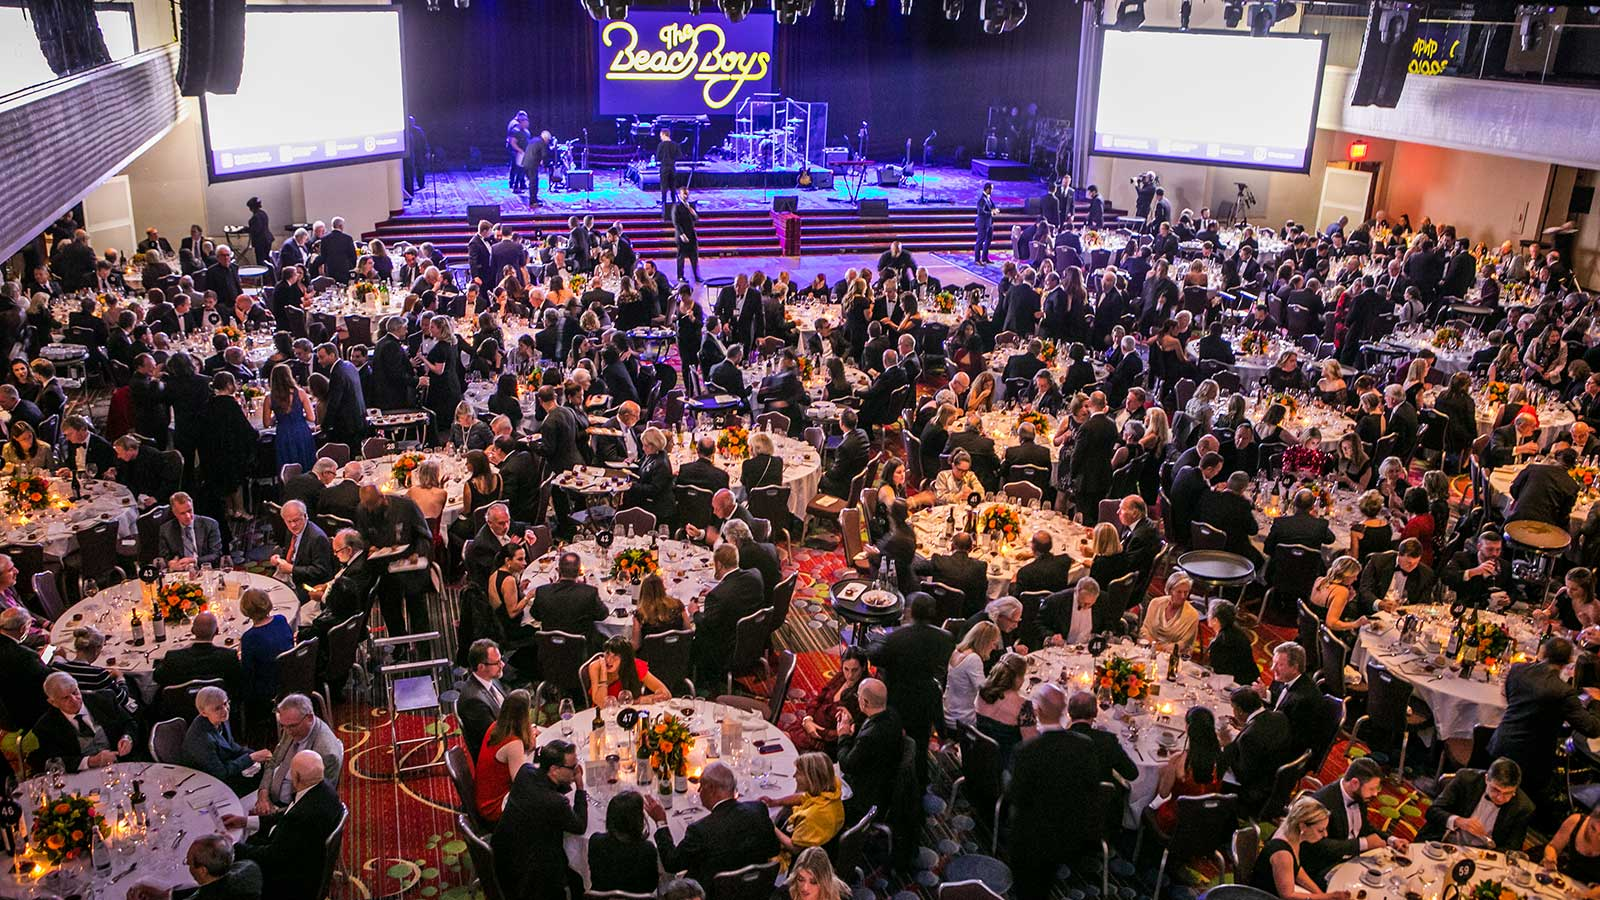 Grand Award Banquet: Raising a Glass to Wine and Friendship